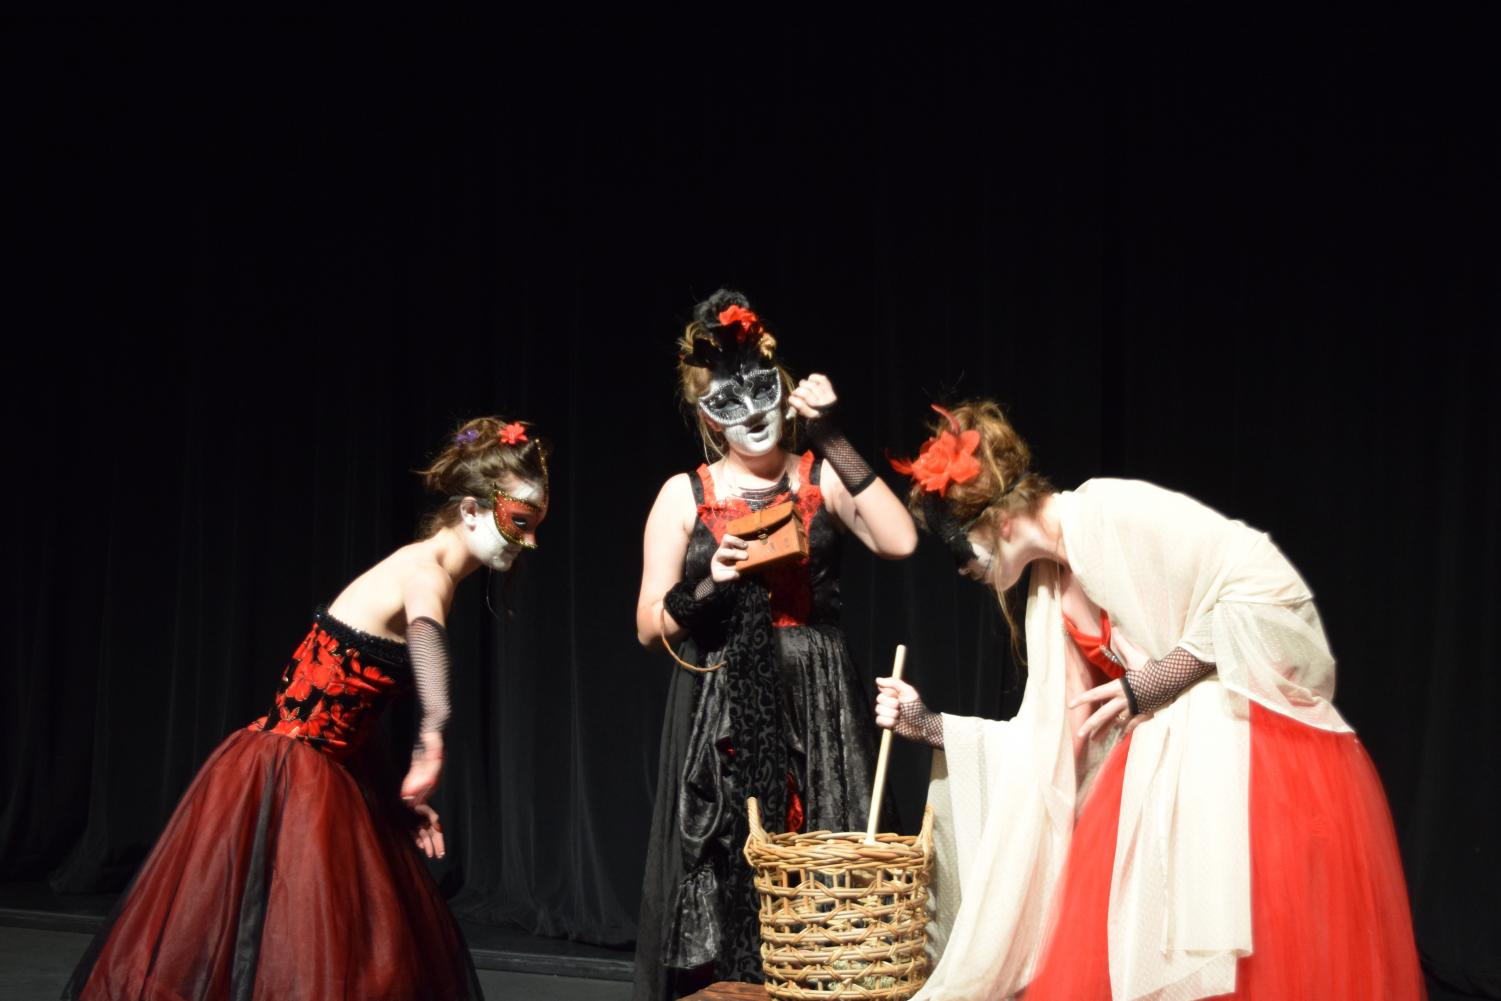 Students Atlee Phillips, Camryn Counsil and Maddie Kirby act in Macbeth at Chapfest